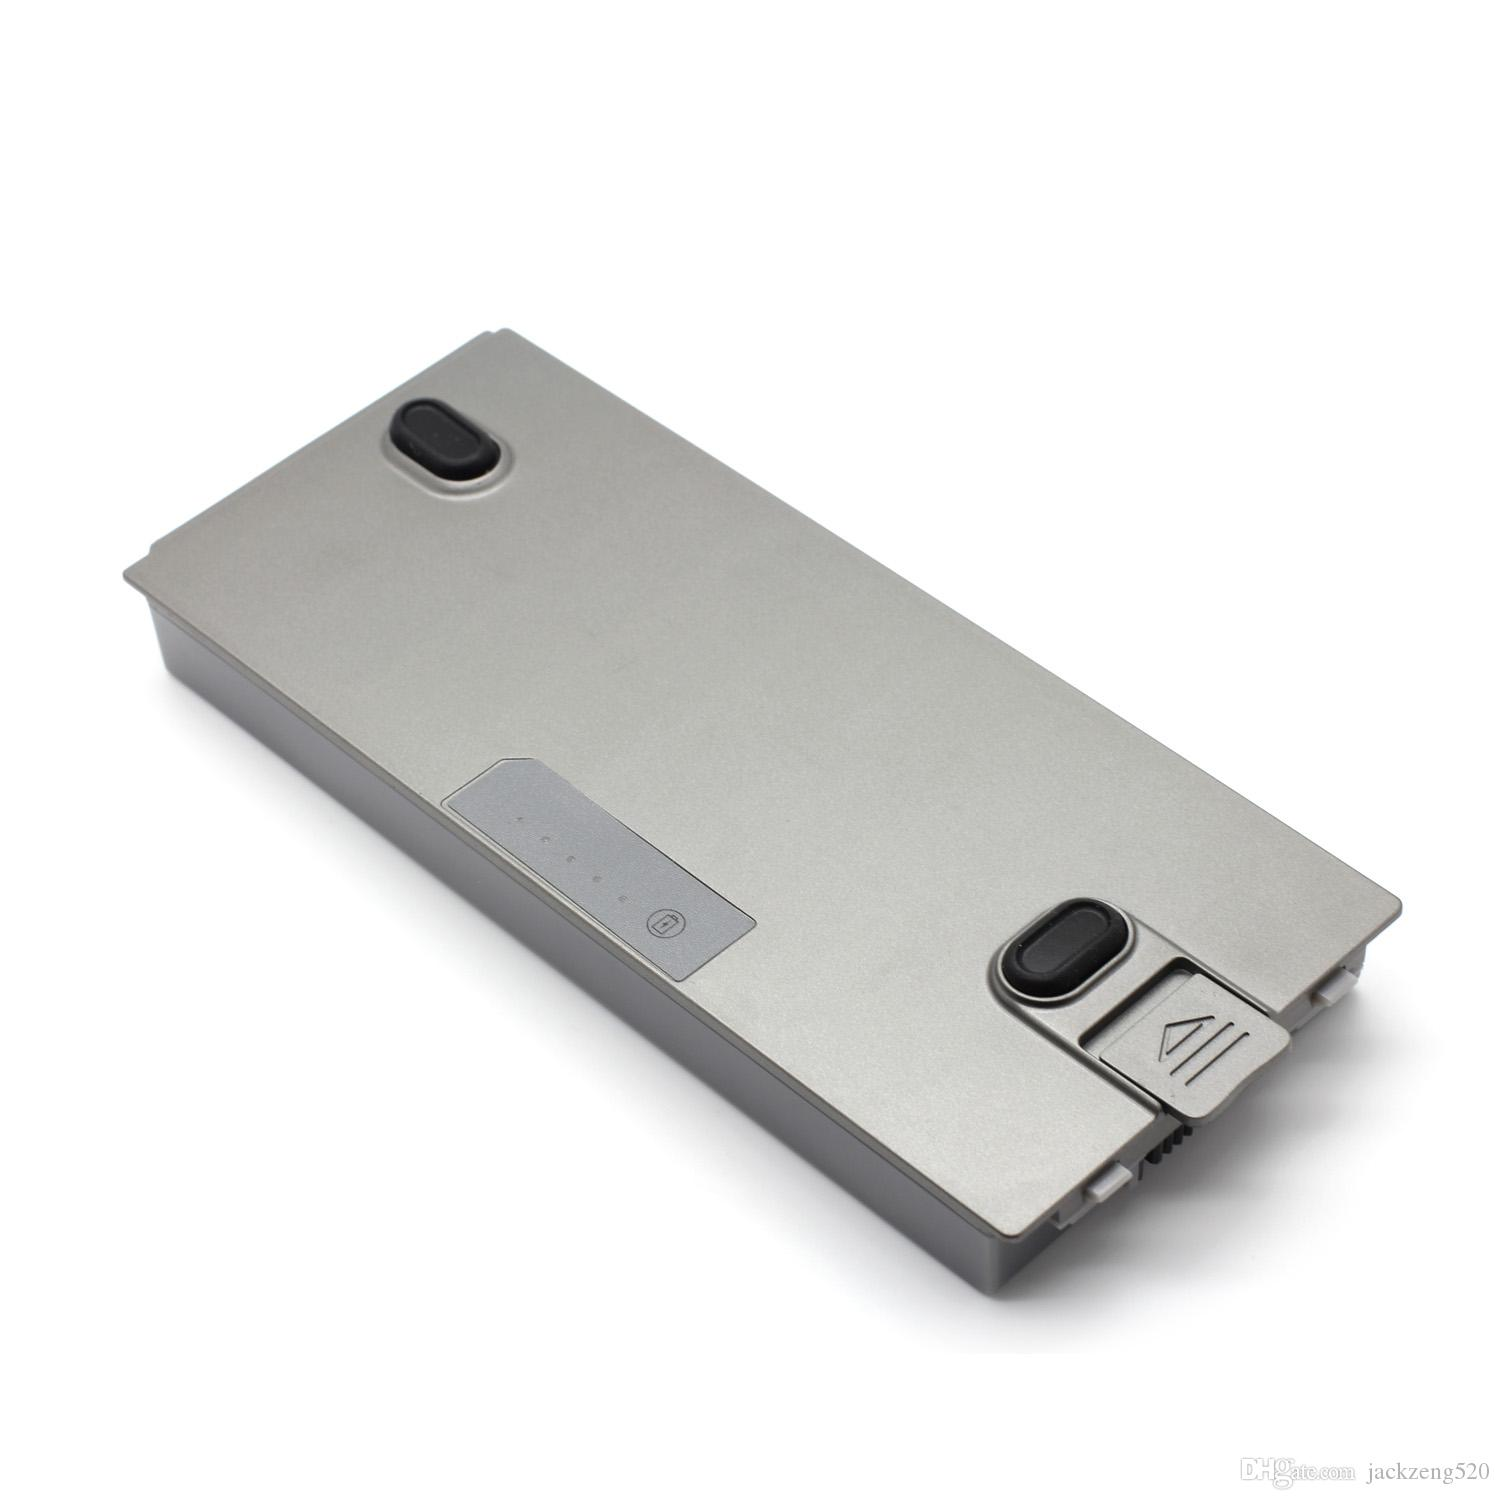 Battery for Dell D810 Series